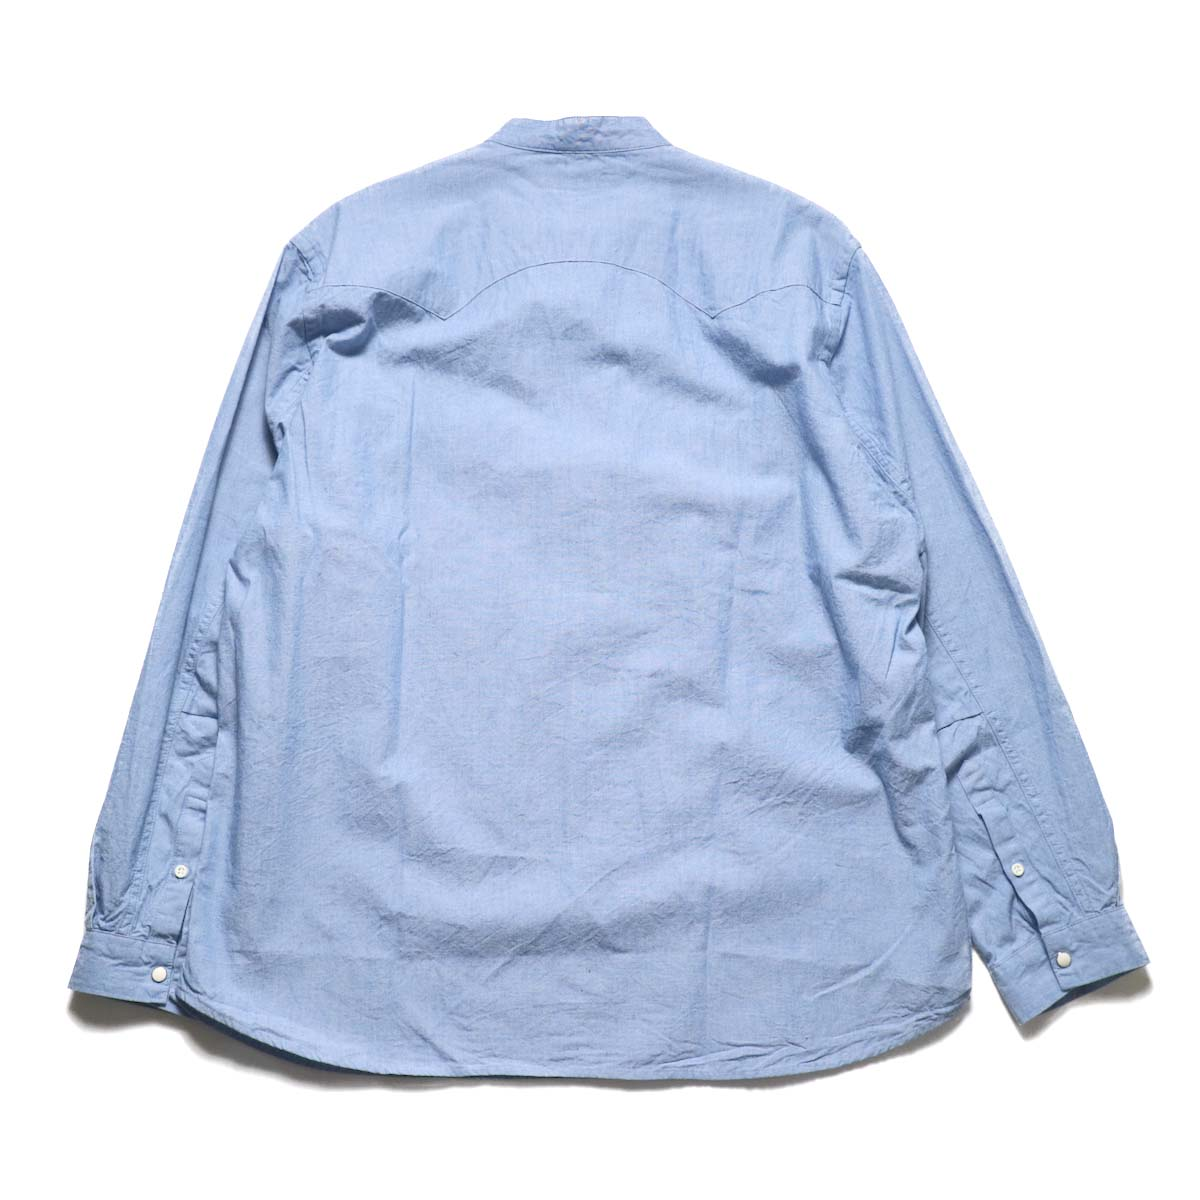 nonnative / RANCHER PULLOVER SHIRT RELAXED FIT COTTON 5oz CHAMBRAY (Sax)背面